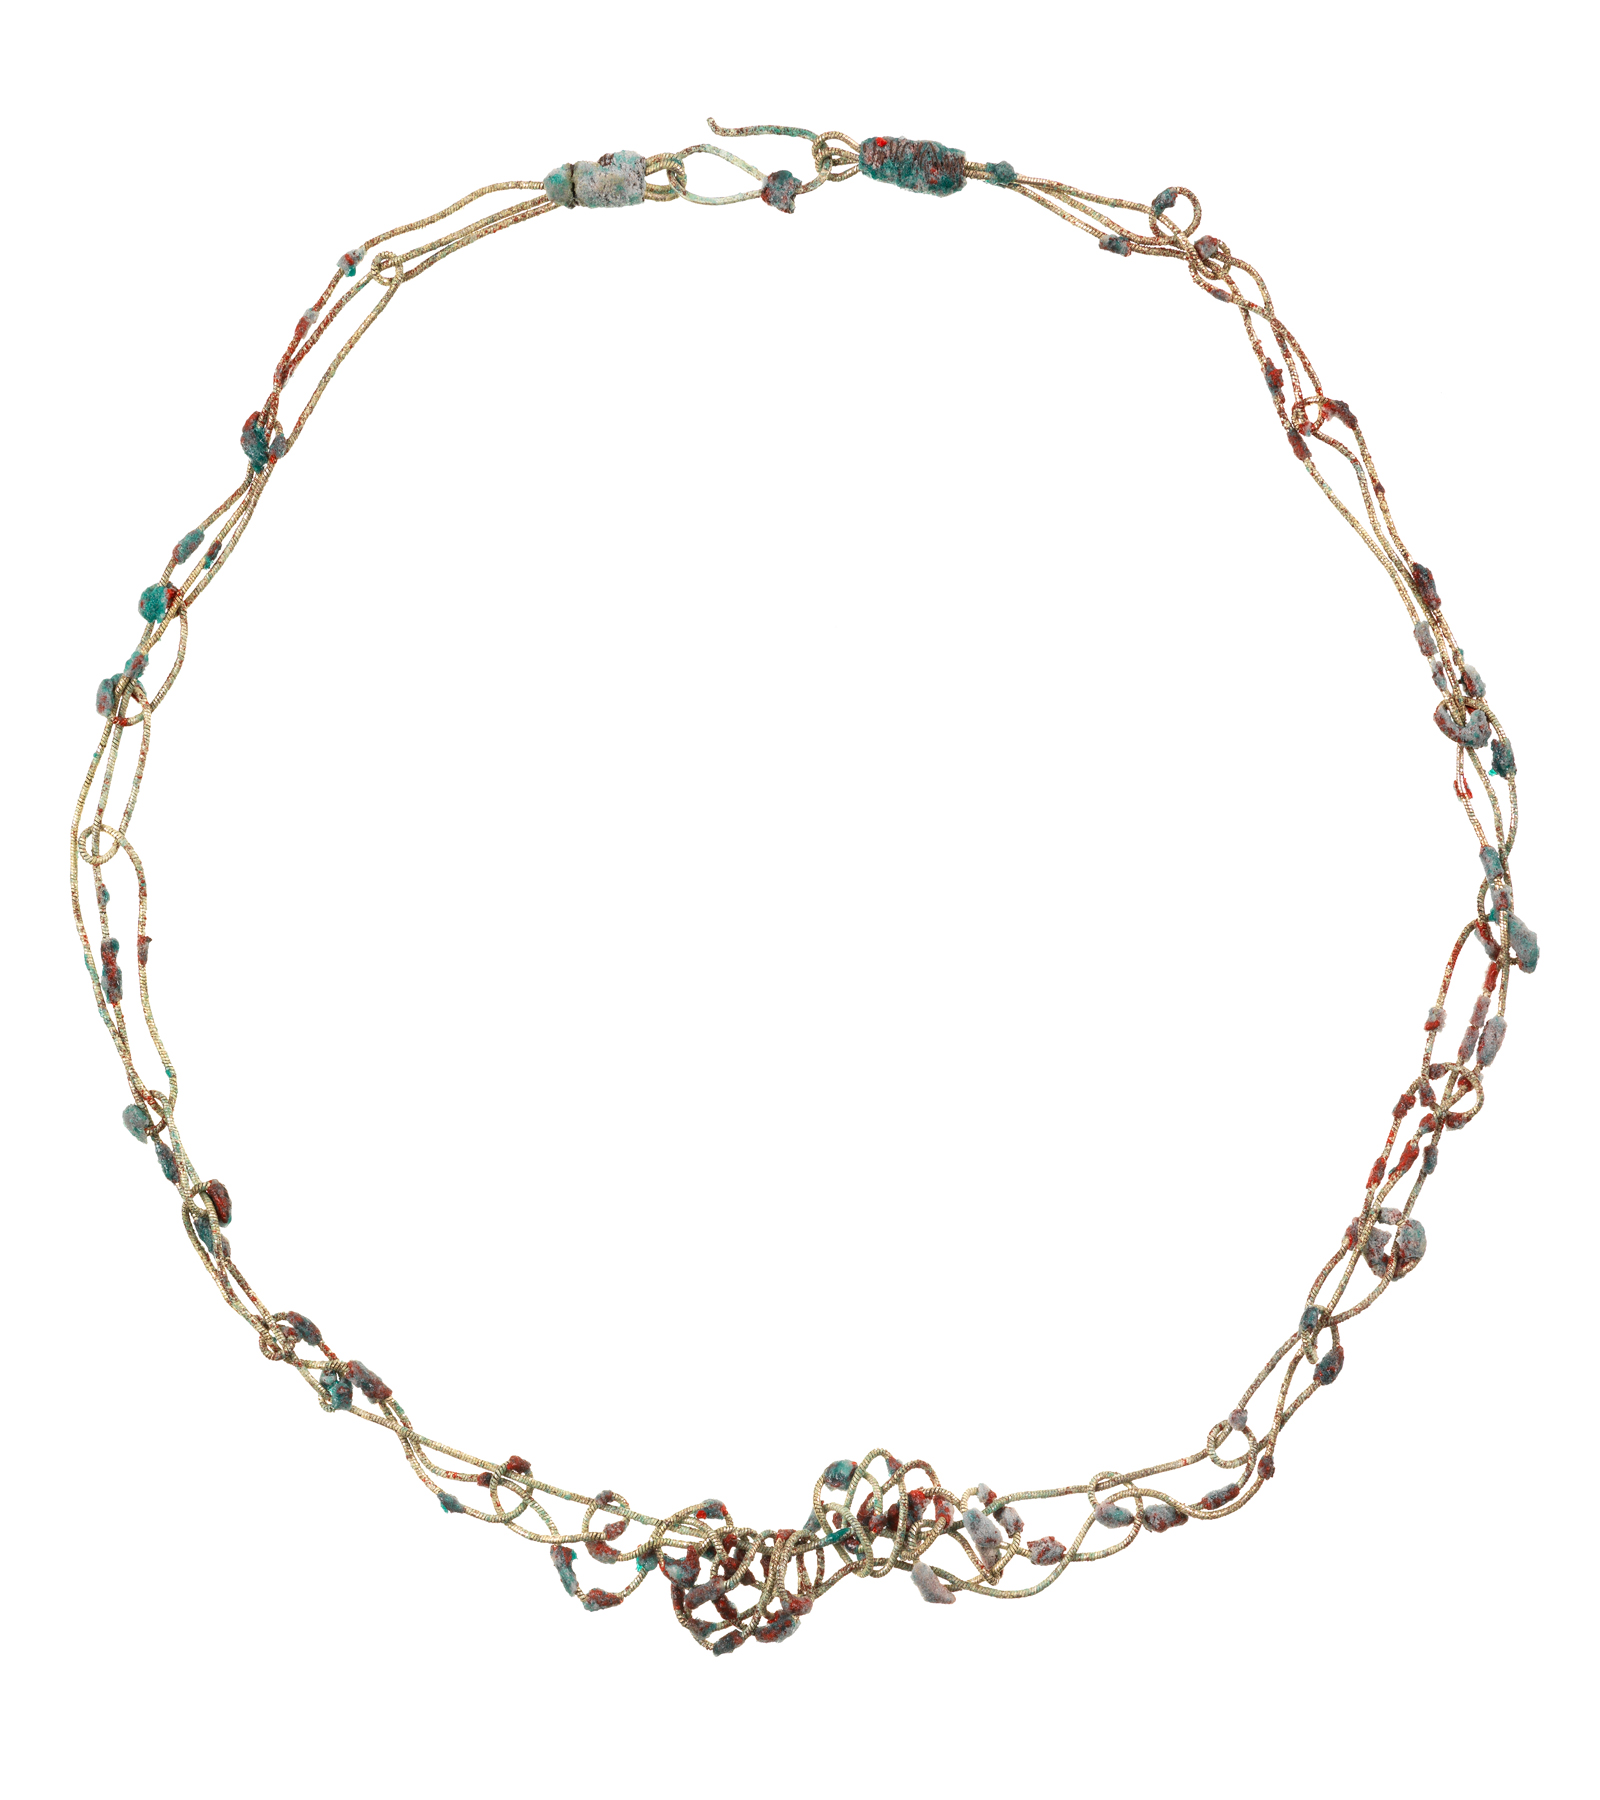 Loopy Short Necklace, 2007